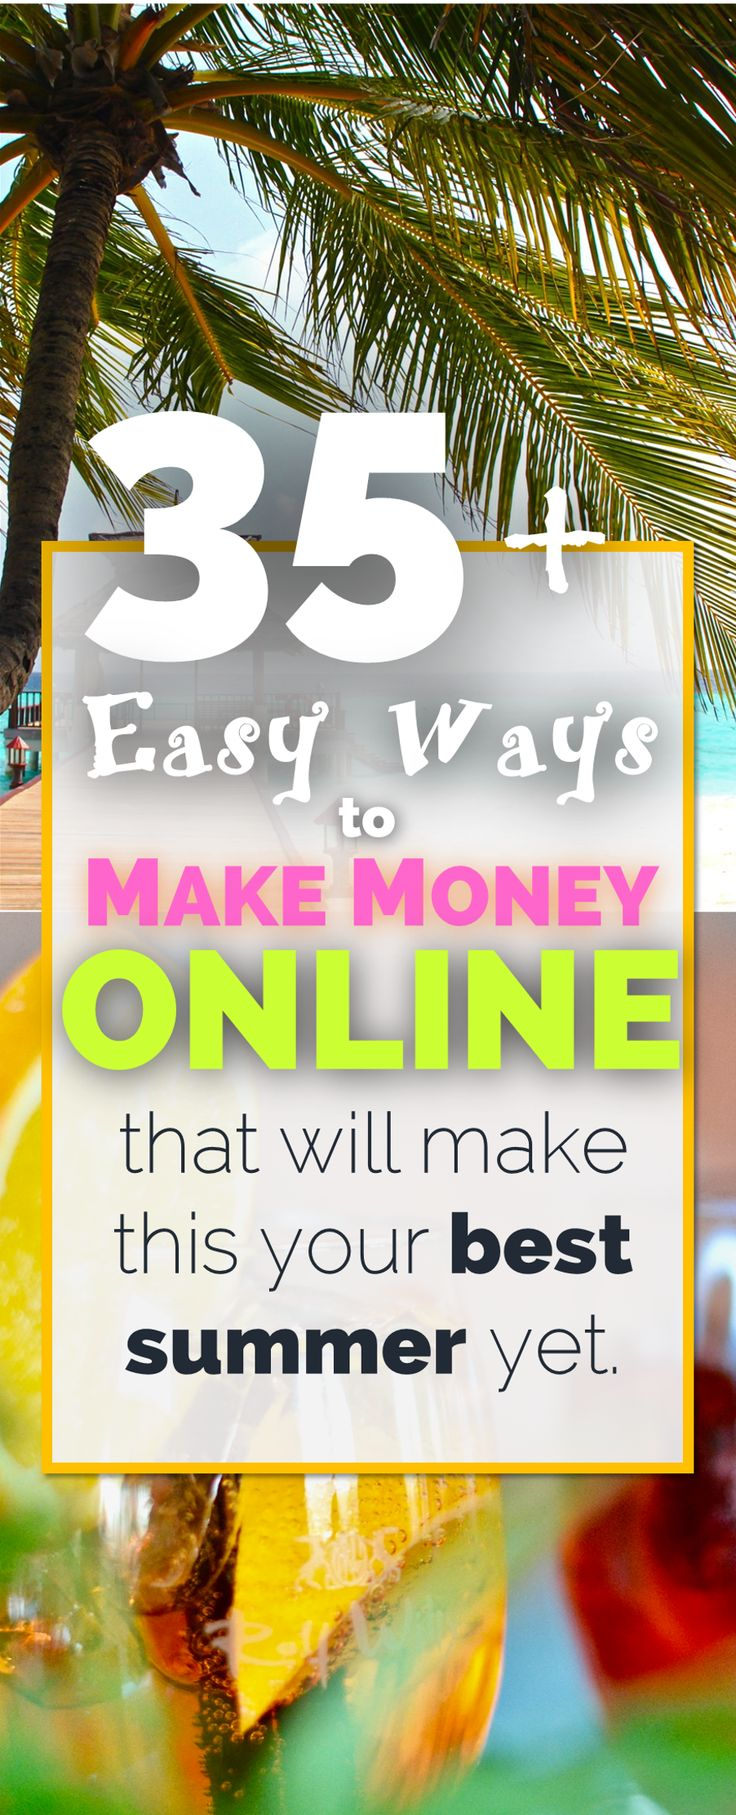 Looking for a side hustle this summer to make money online? Here's an AMAZING list of 35 ways to make extra money without leaving your house...or the beach!